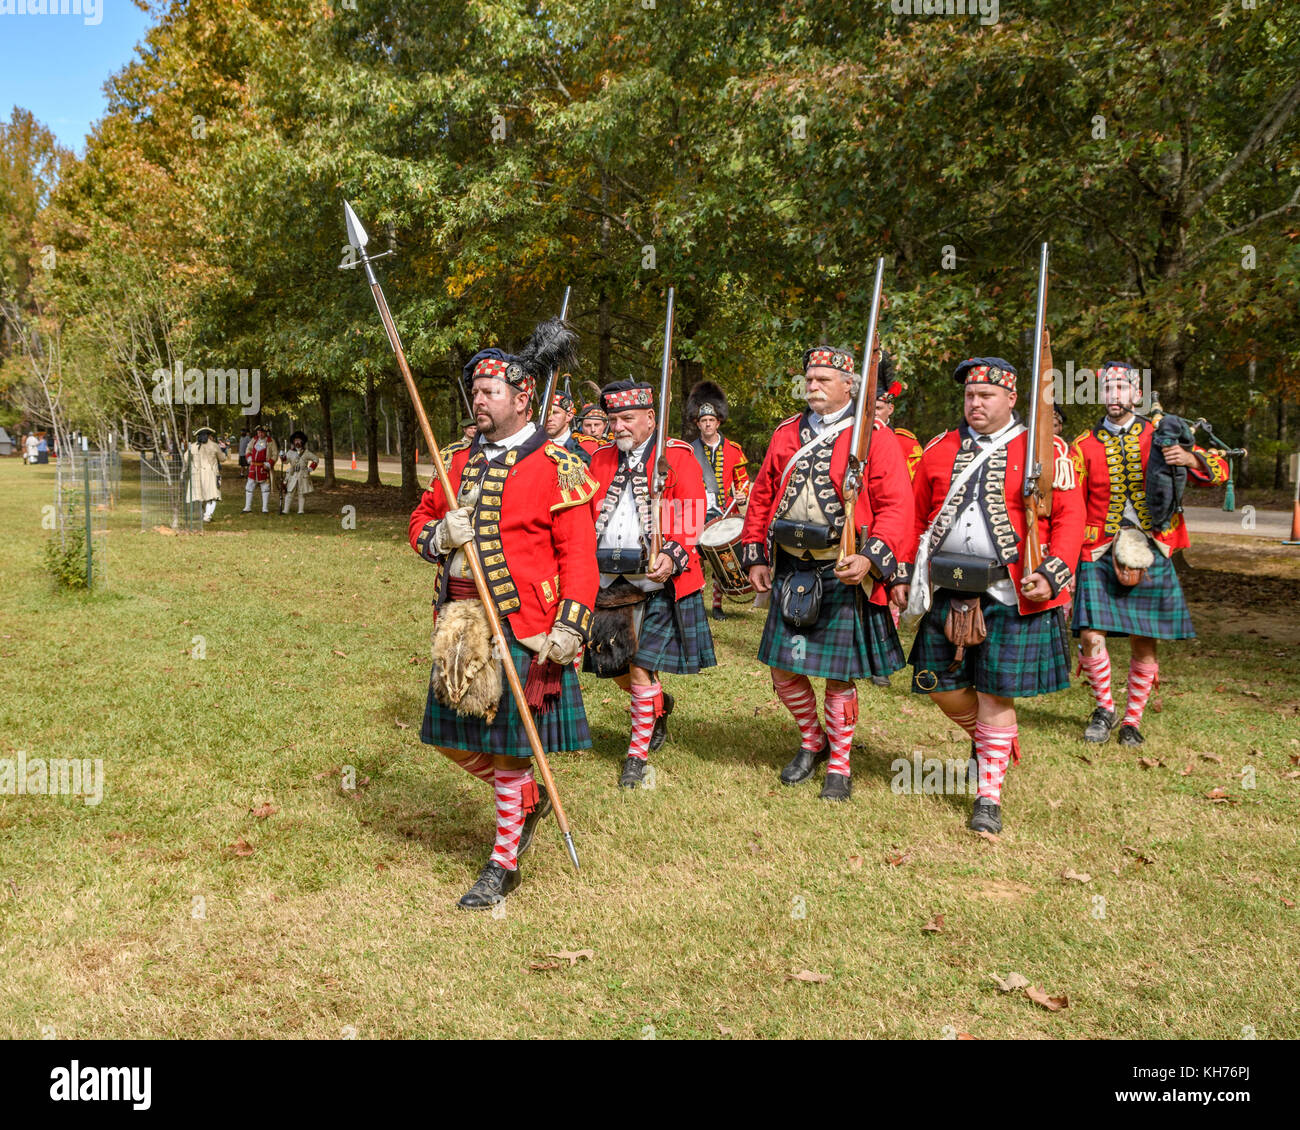 Reenactment actors portraying the 42nd Highlanders Regiment, Black Watch, of the 1700's, drum and pipes. - Stock Image